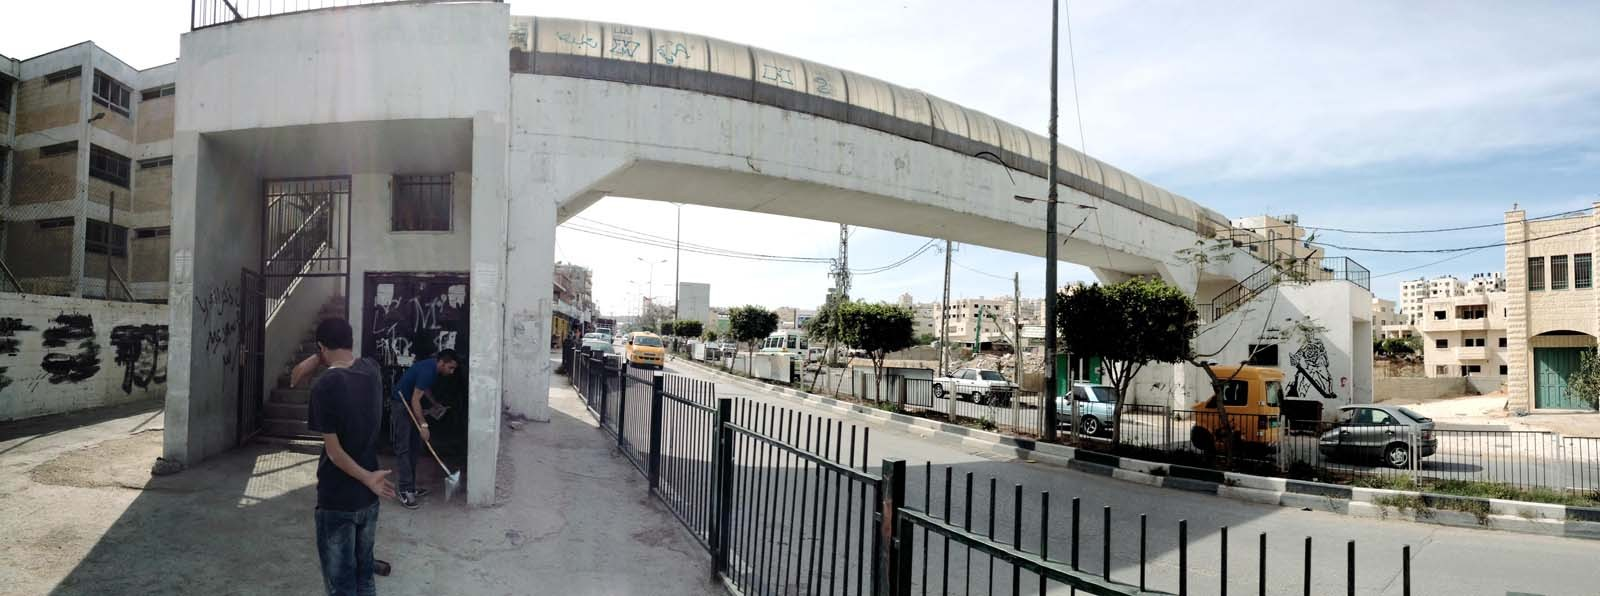 The pedestrian footbridge connecting the city of Deishah to the camp: build by people in the city to allow their children to attend the UNRWA school in the camp. It has since been closed. (Photo courtesy Campus in Camps)